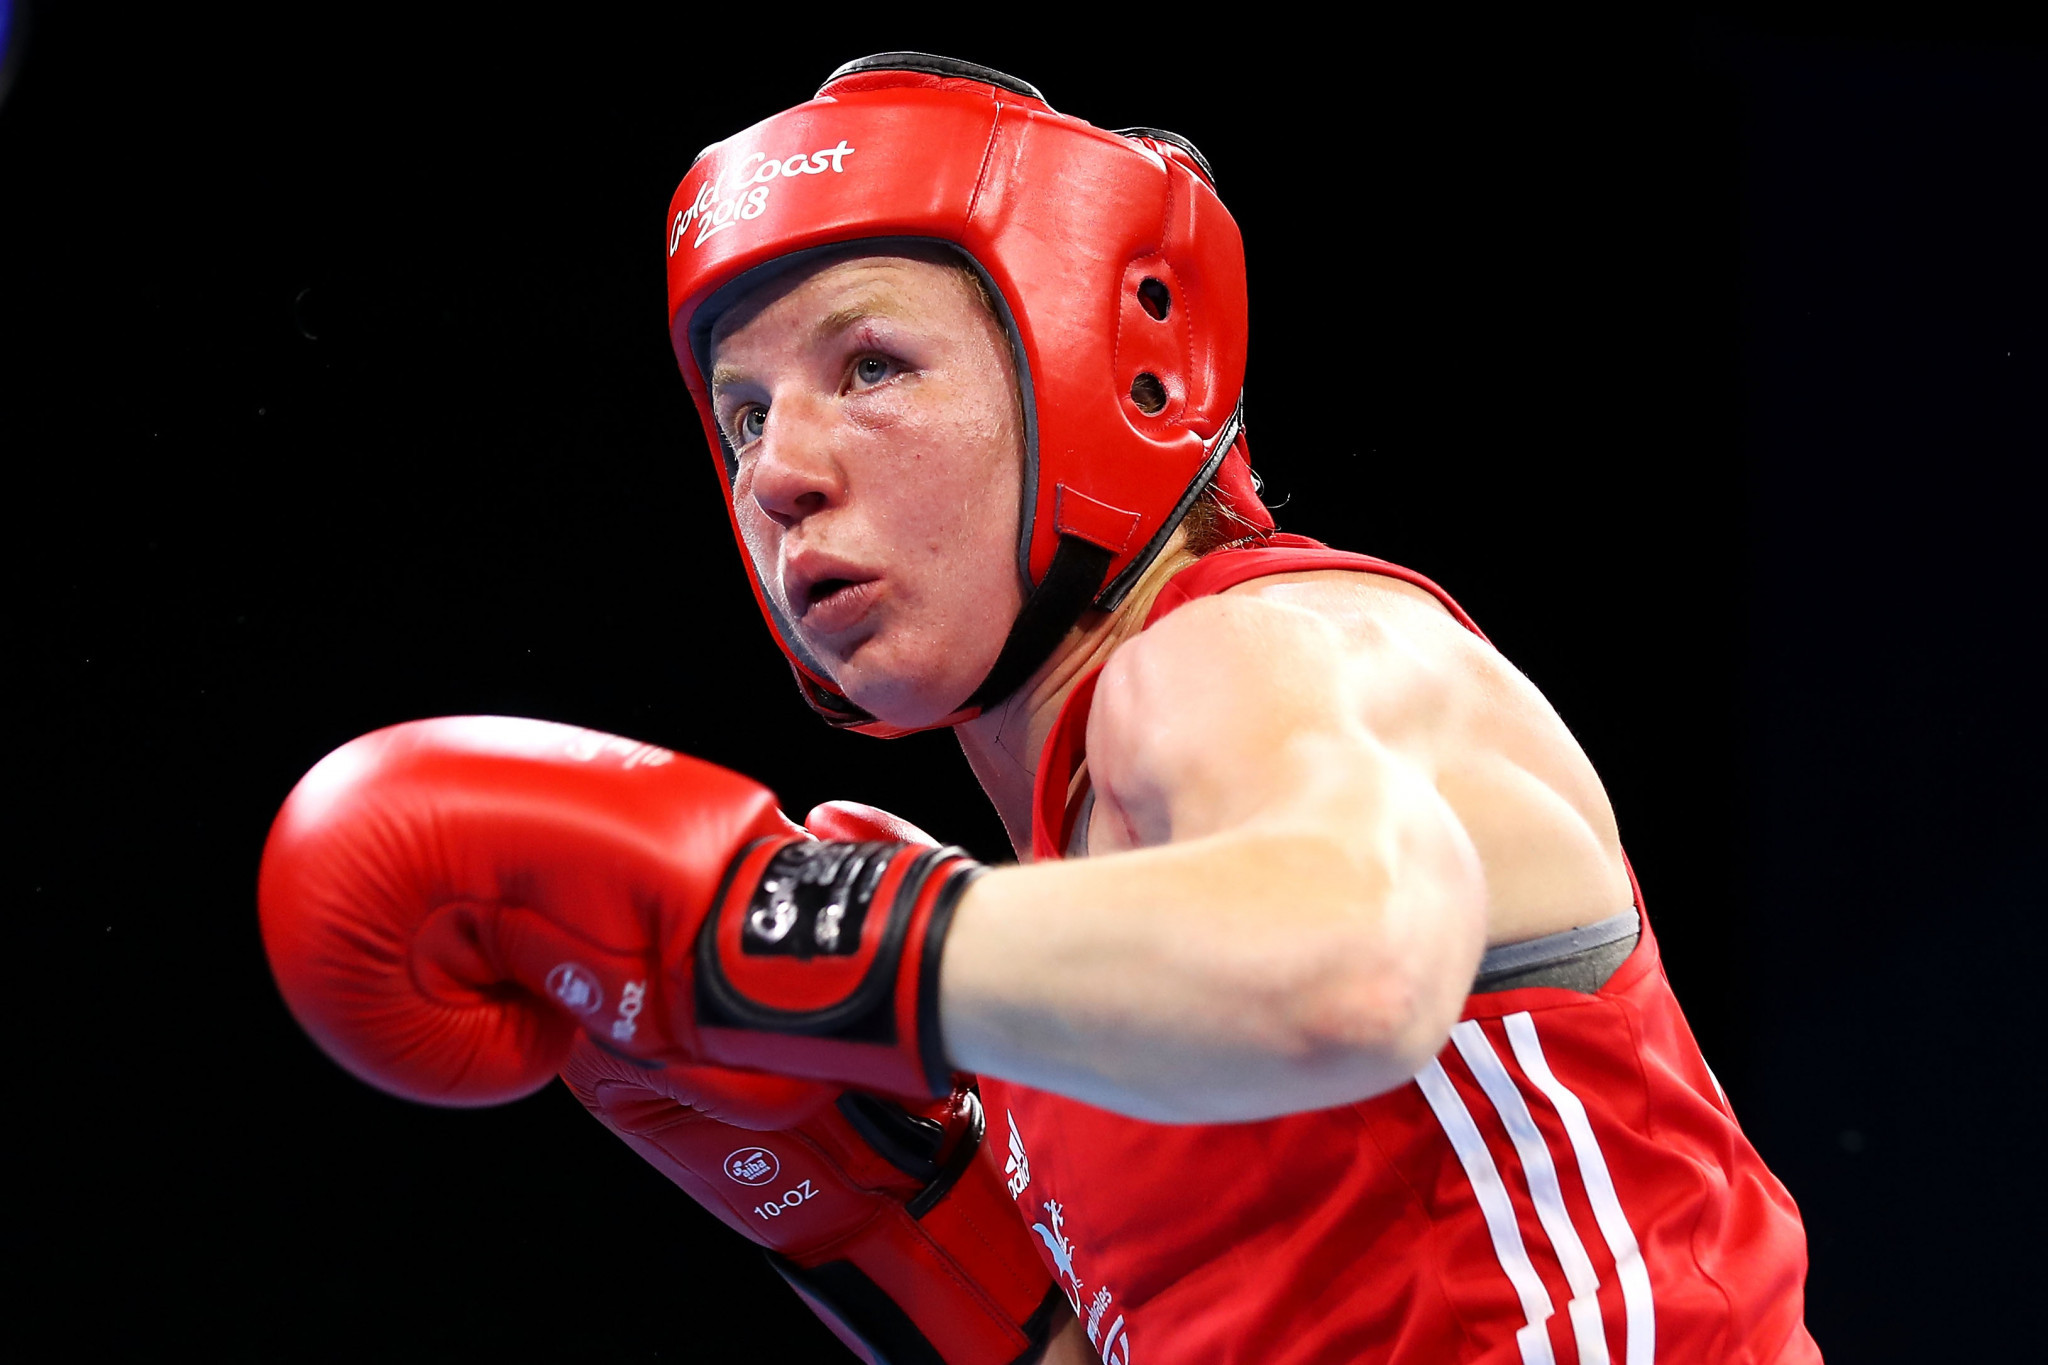 Rosie Eccles of Wales crashed out of the AIBA Women's World Championships ©Getty Images